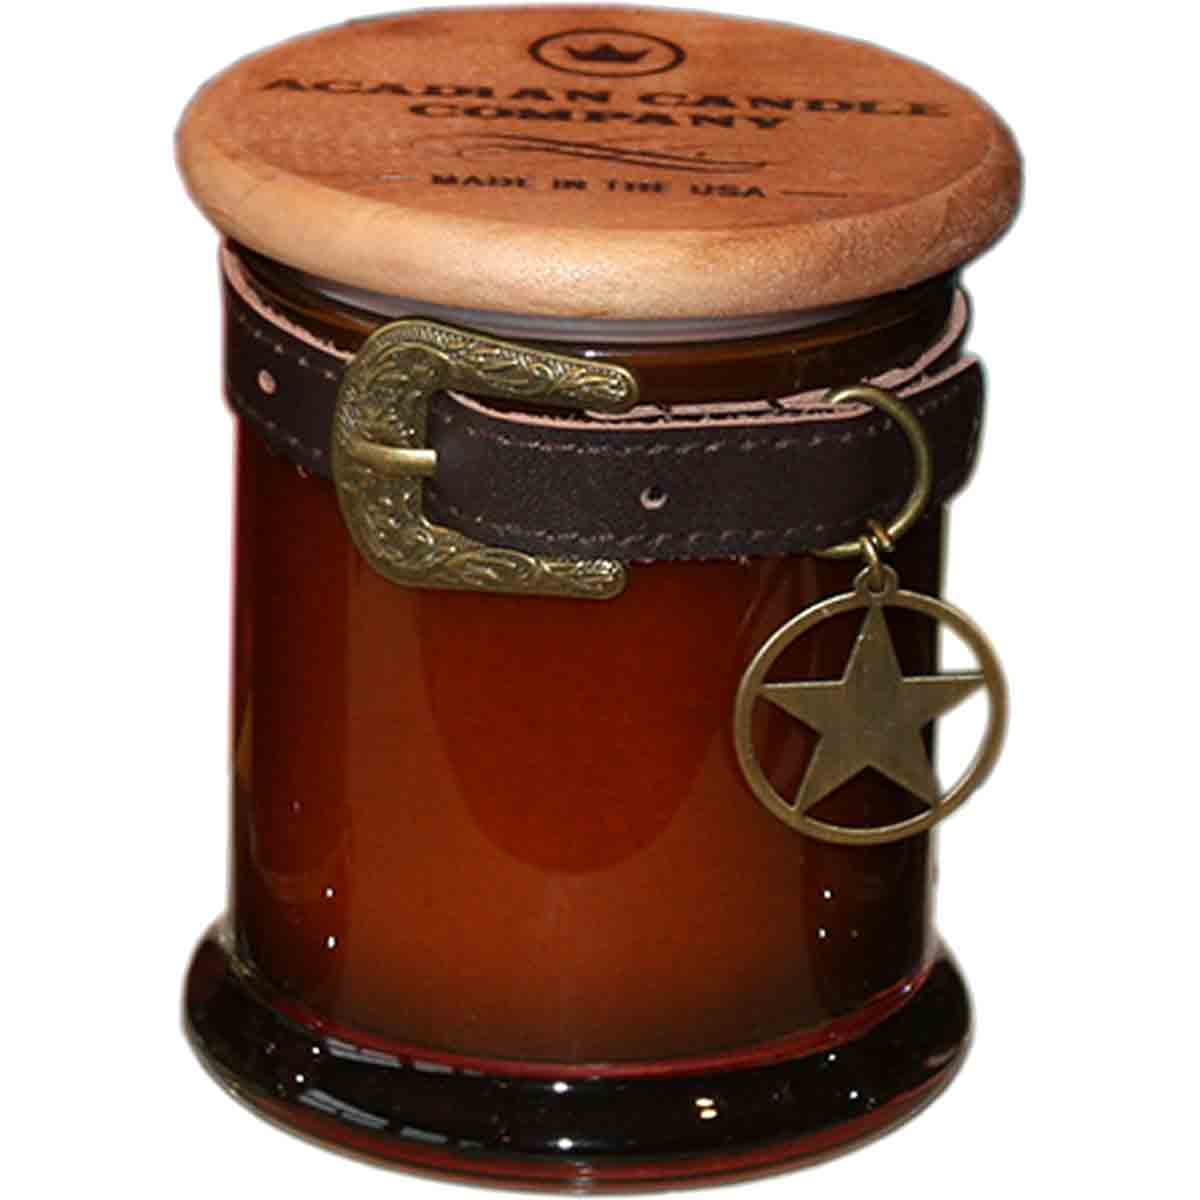 Lone Star Belt Candle - Oakmoss and Tobacco Scent